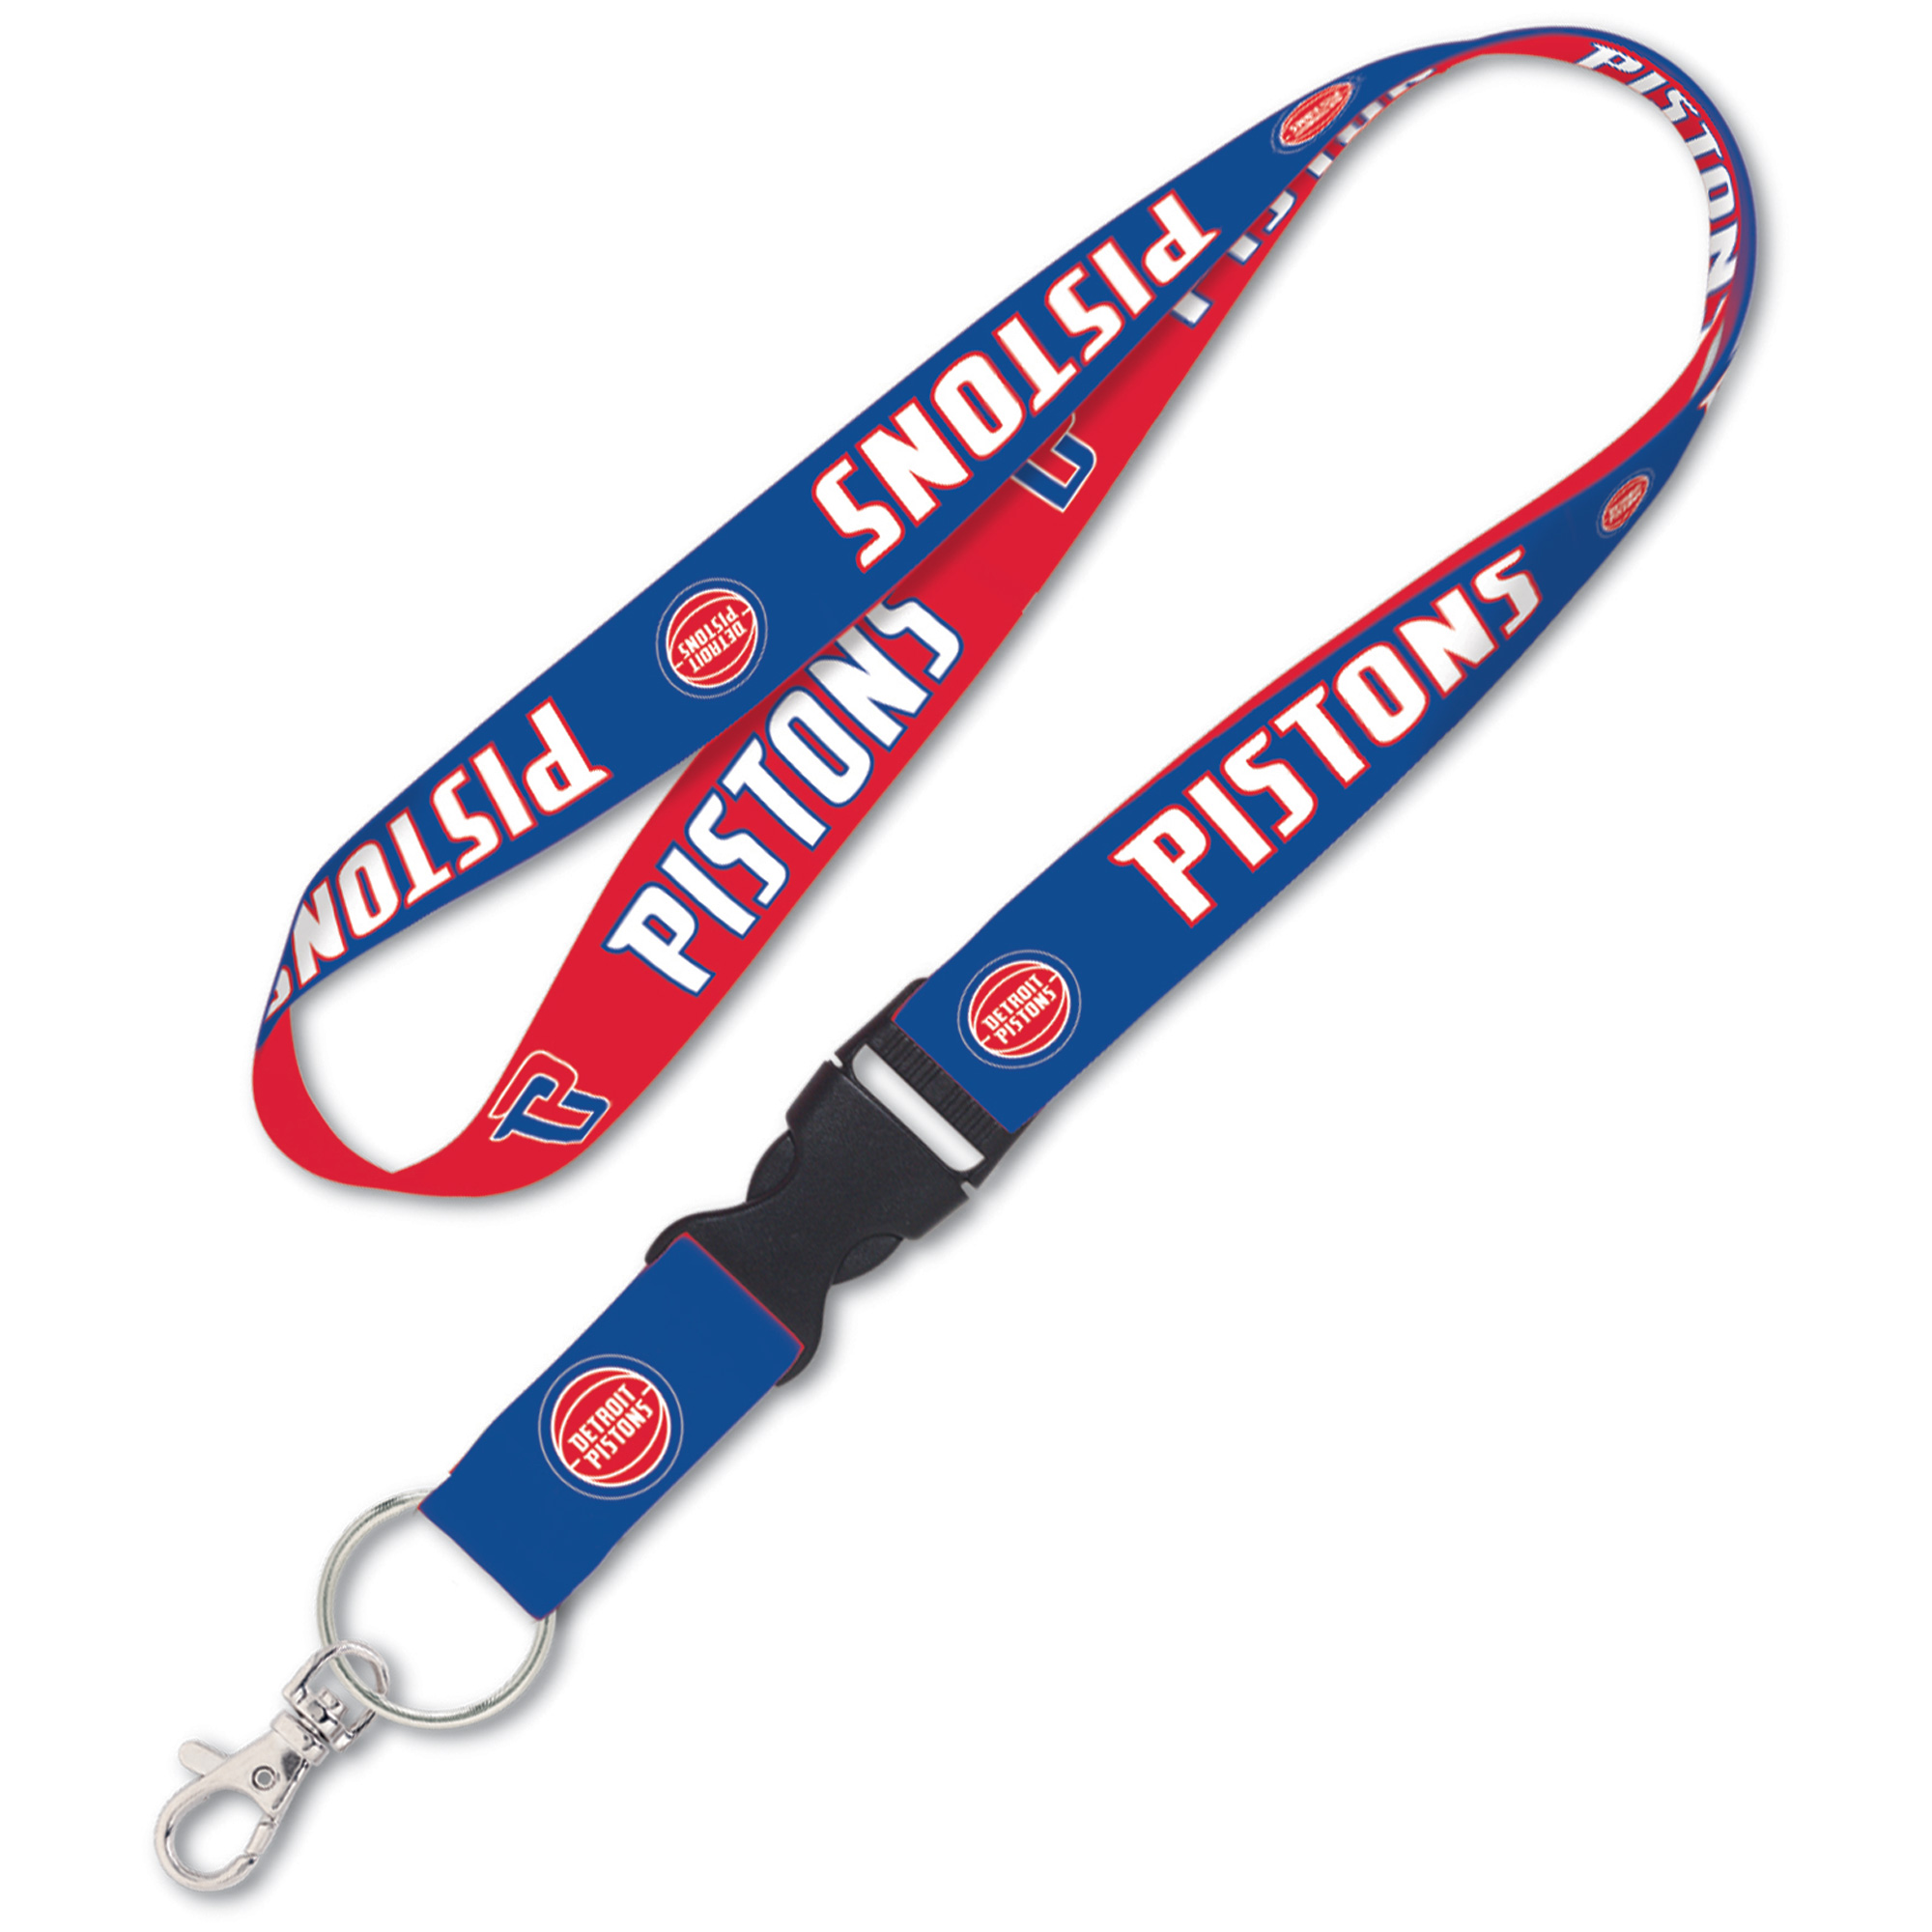 Detroit Pistons WinCraft Wordmark Lanyard with Detachable Buckle - No Size